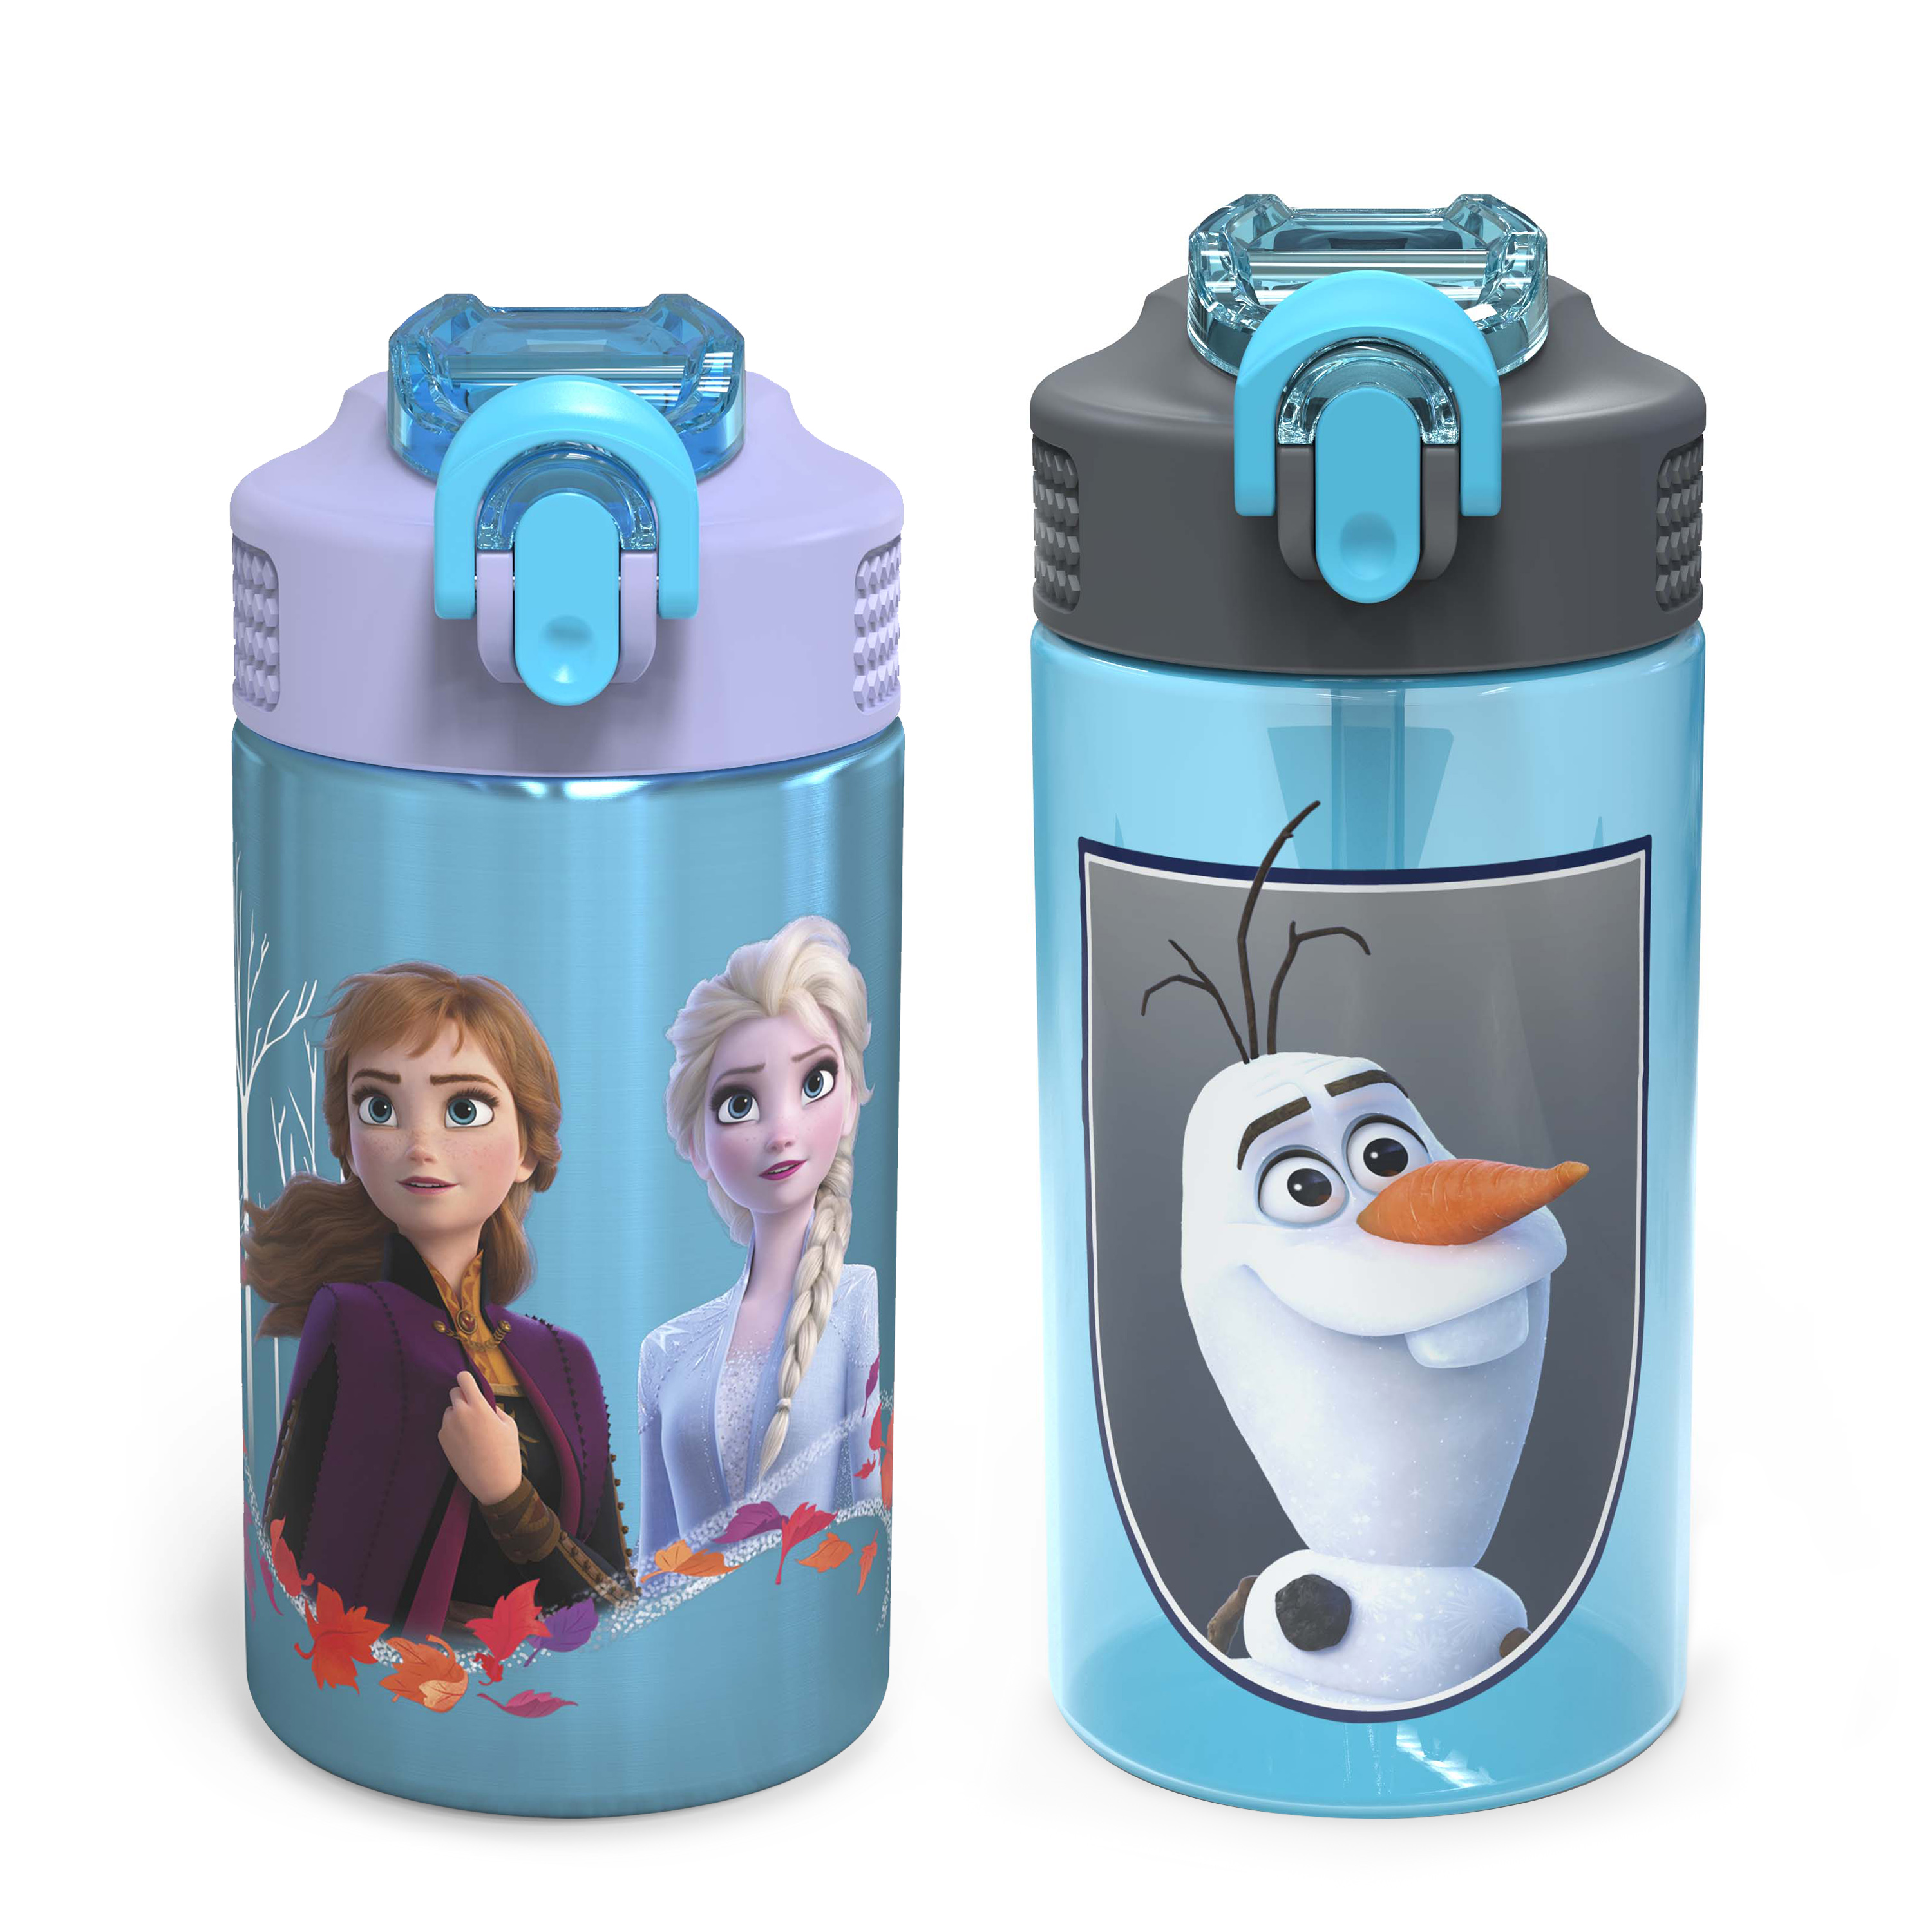 Disney Frozen 2 Movie Water Bottle, Anna , Elsa and Olaf, 2-piece set slideshow image 2